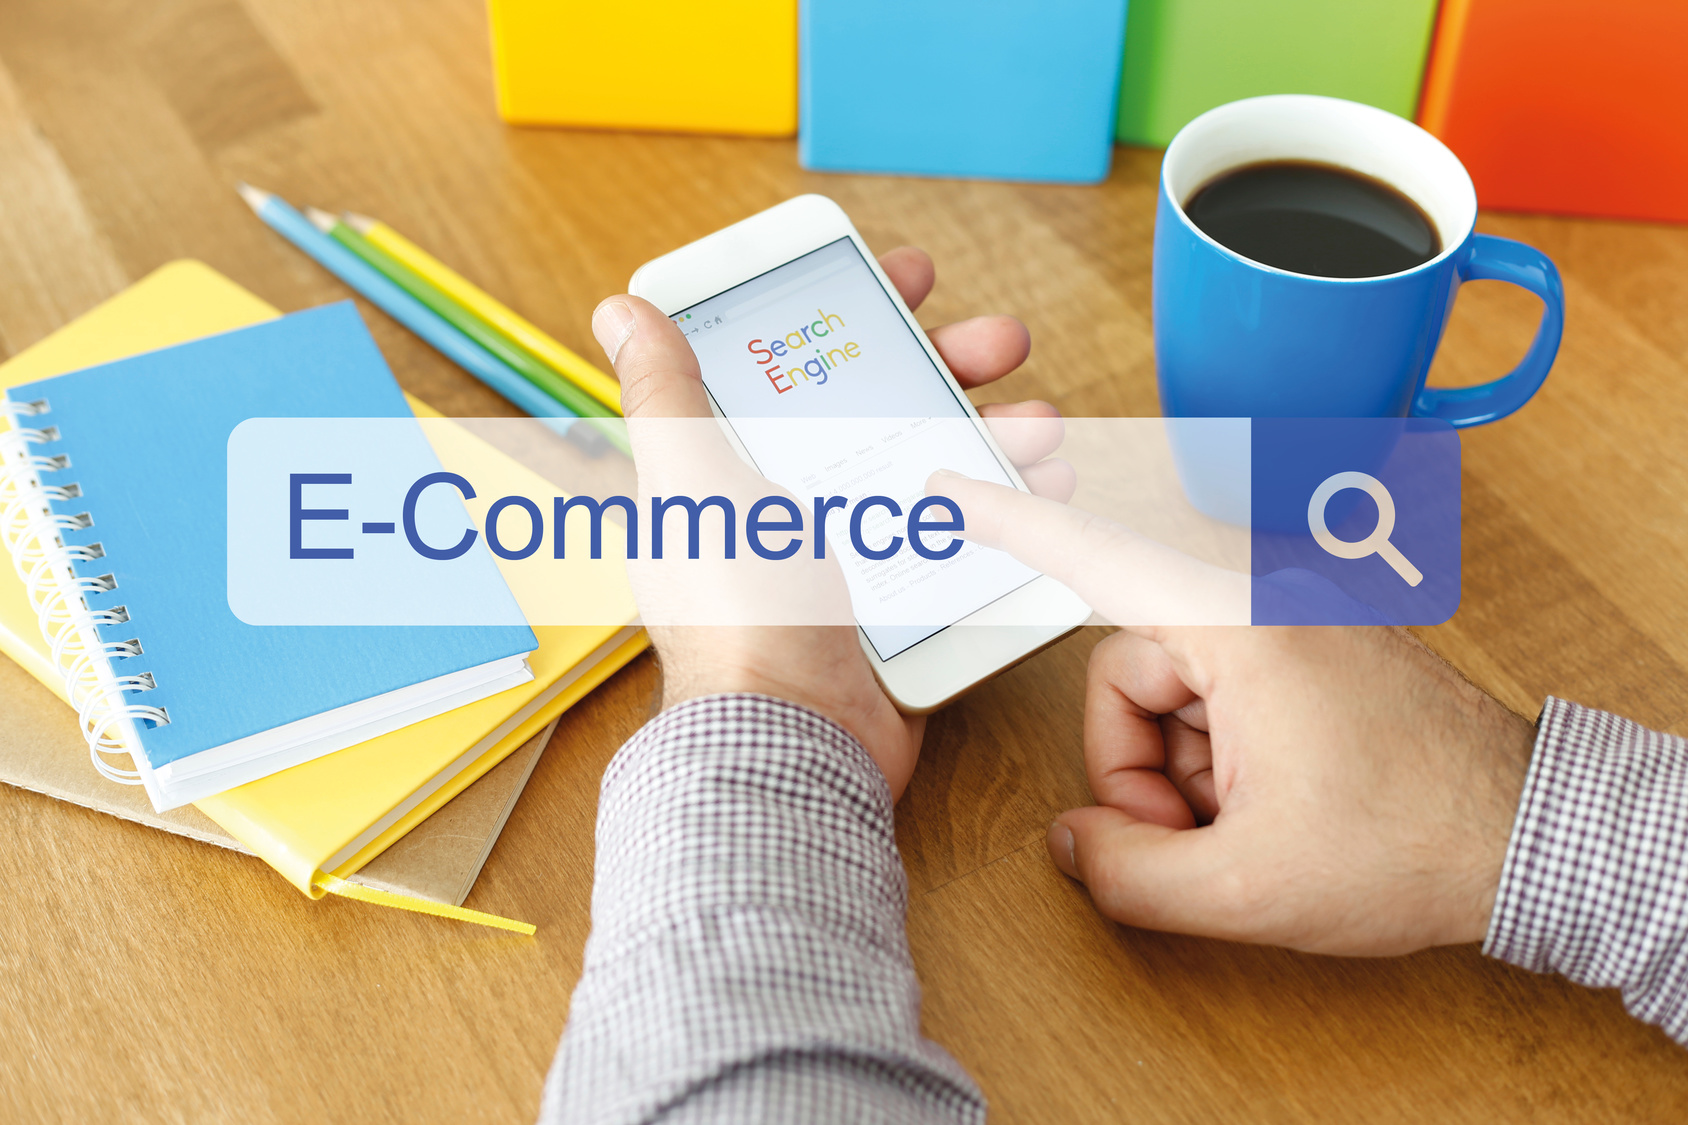 ecommerce website design, ecom website design, website design, web design huddersfield, online shop website design